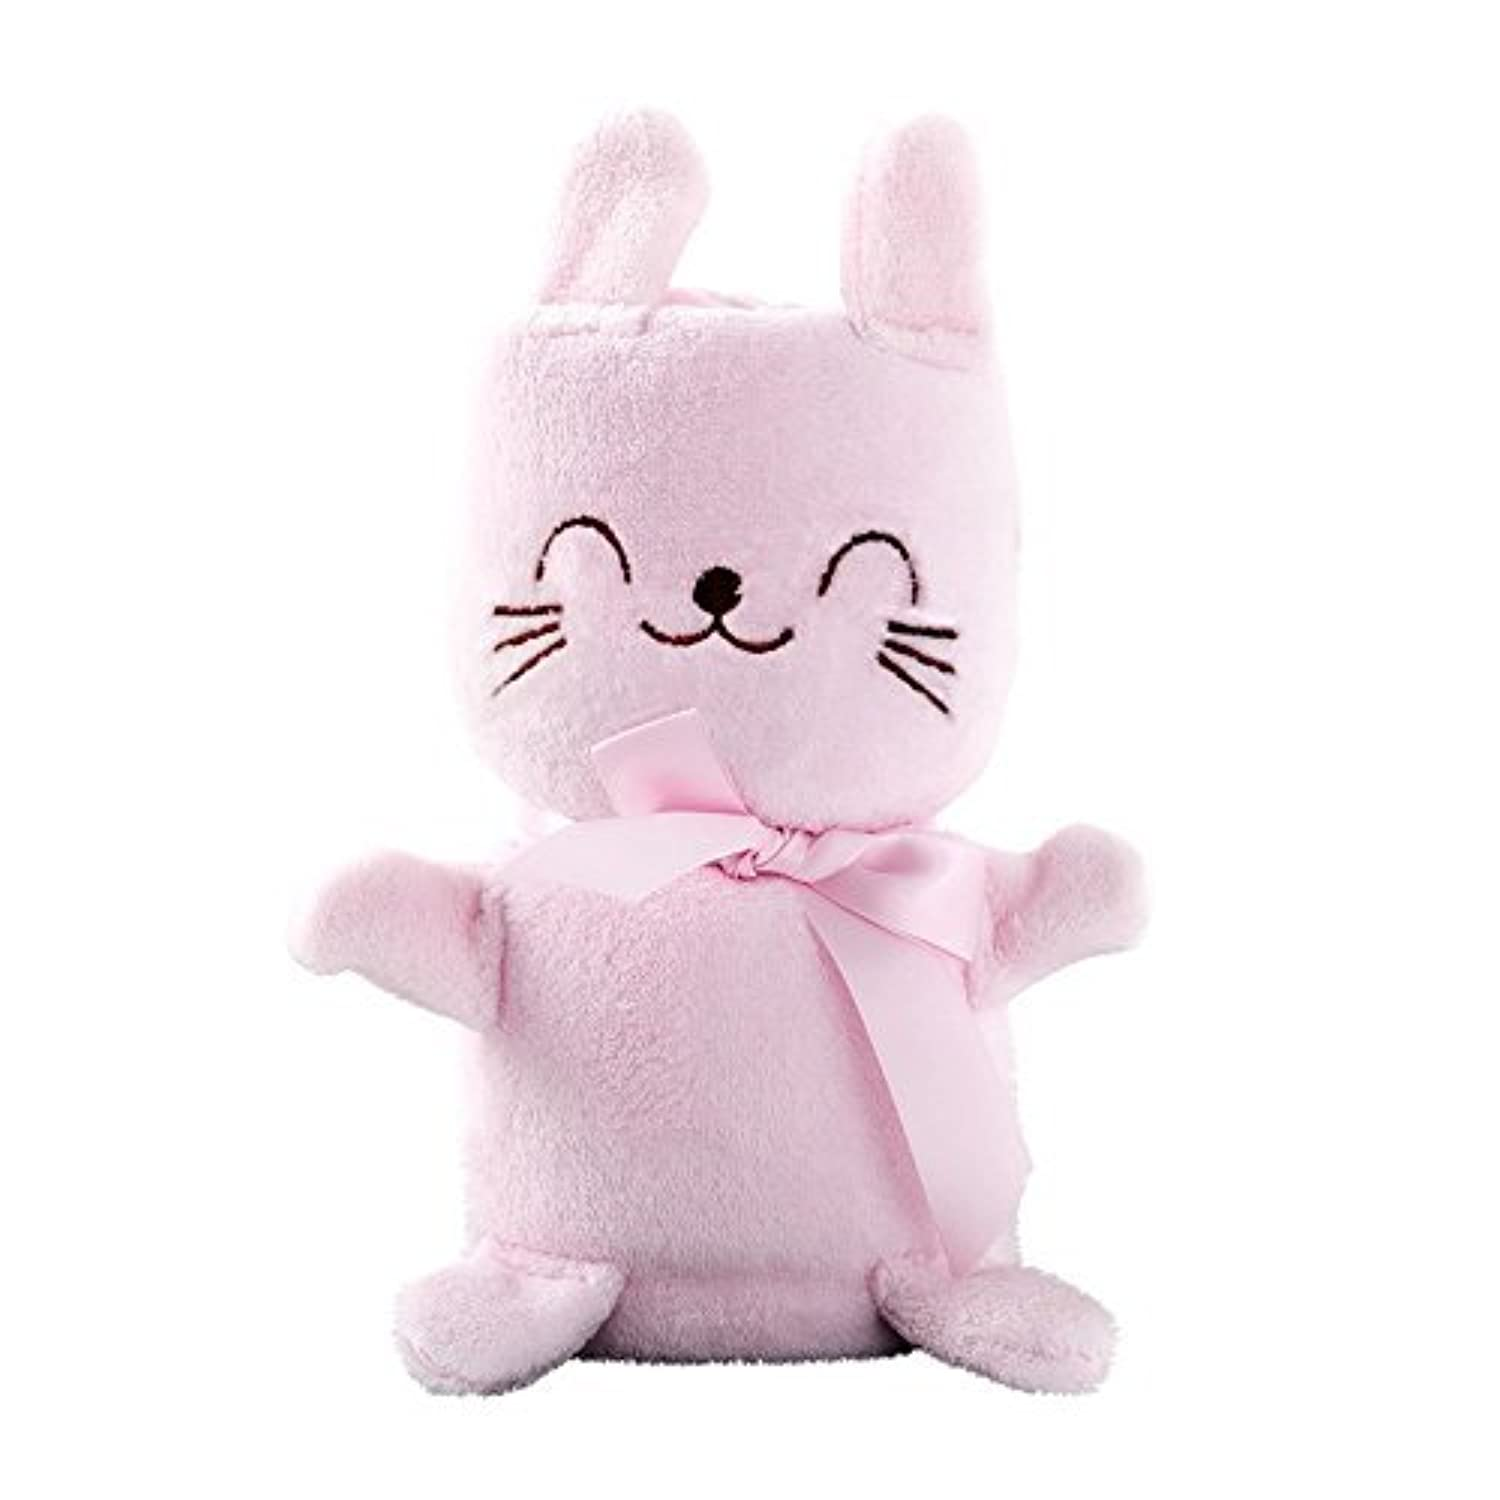 BABYSINGUS Baby Receiving Blanket, Coral Fleece Animals Model Swaddles, Pink [並行輸入品]